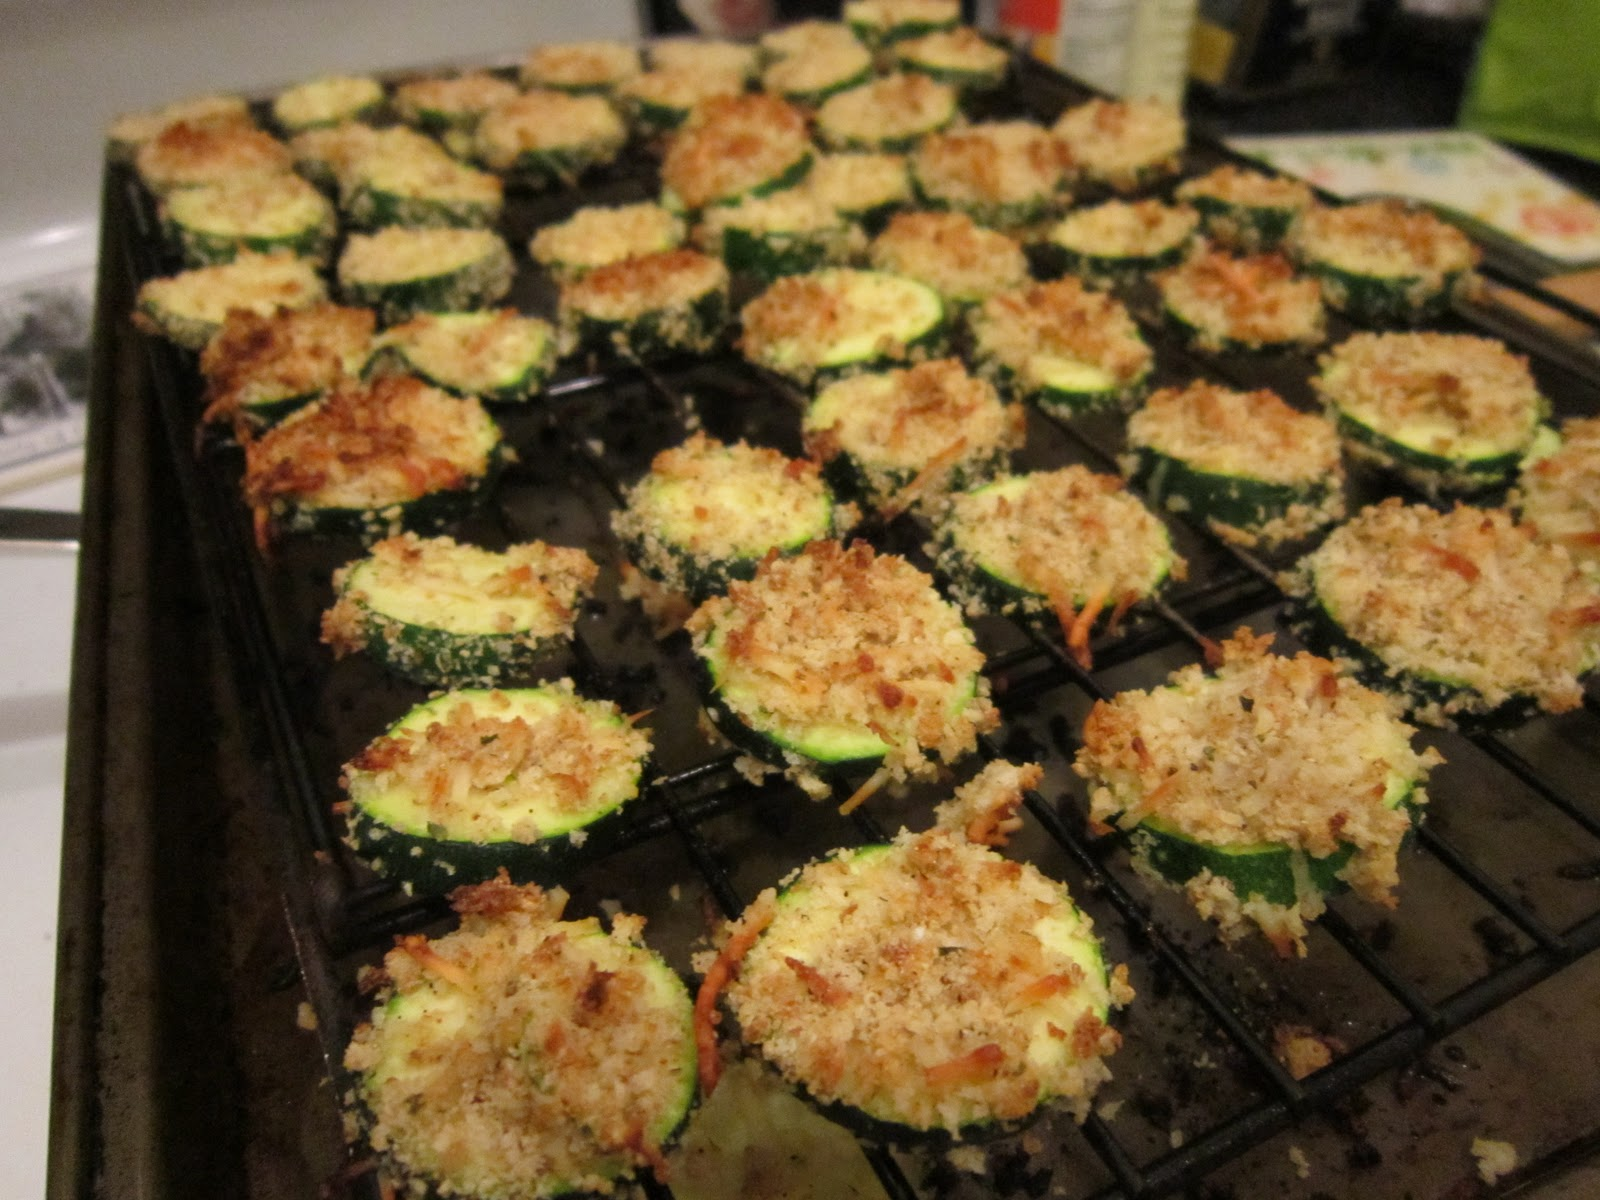 Place Milk In A Shallow Bowl Dip Zucchini Slices And Dredge Breadcrumb Mixture Coated On An Ovenproof Wire Rack With